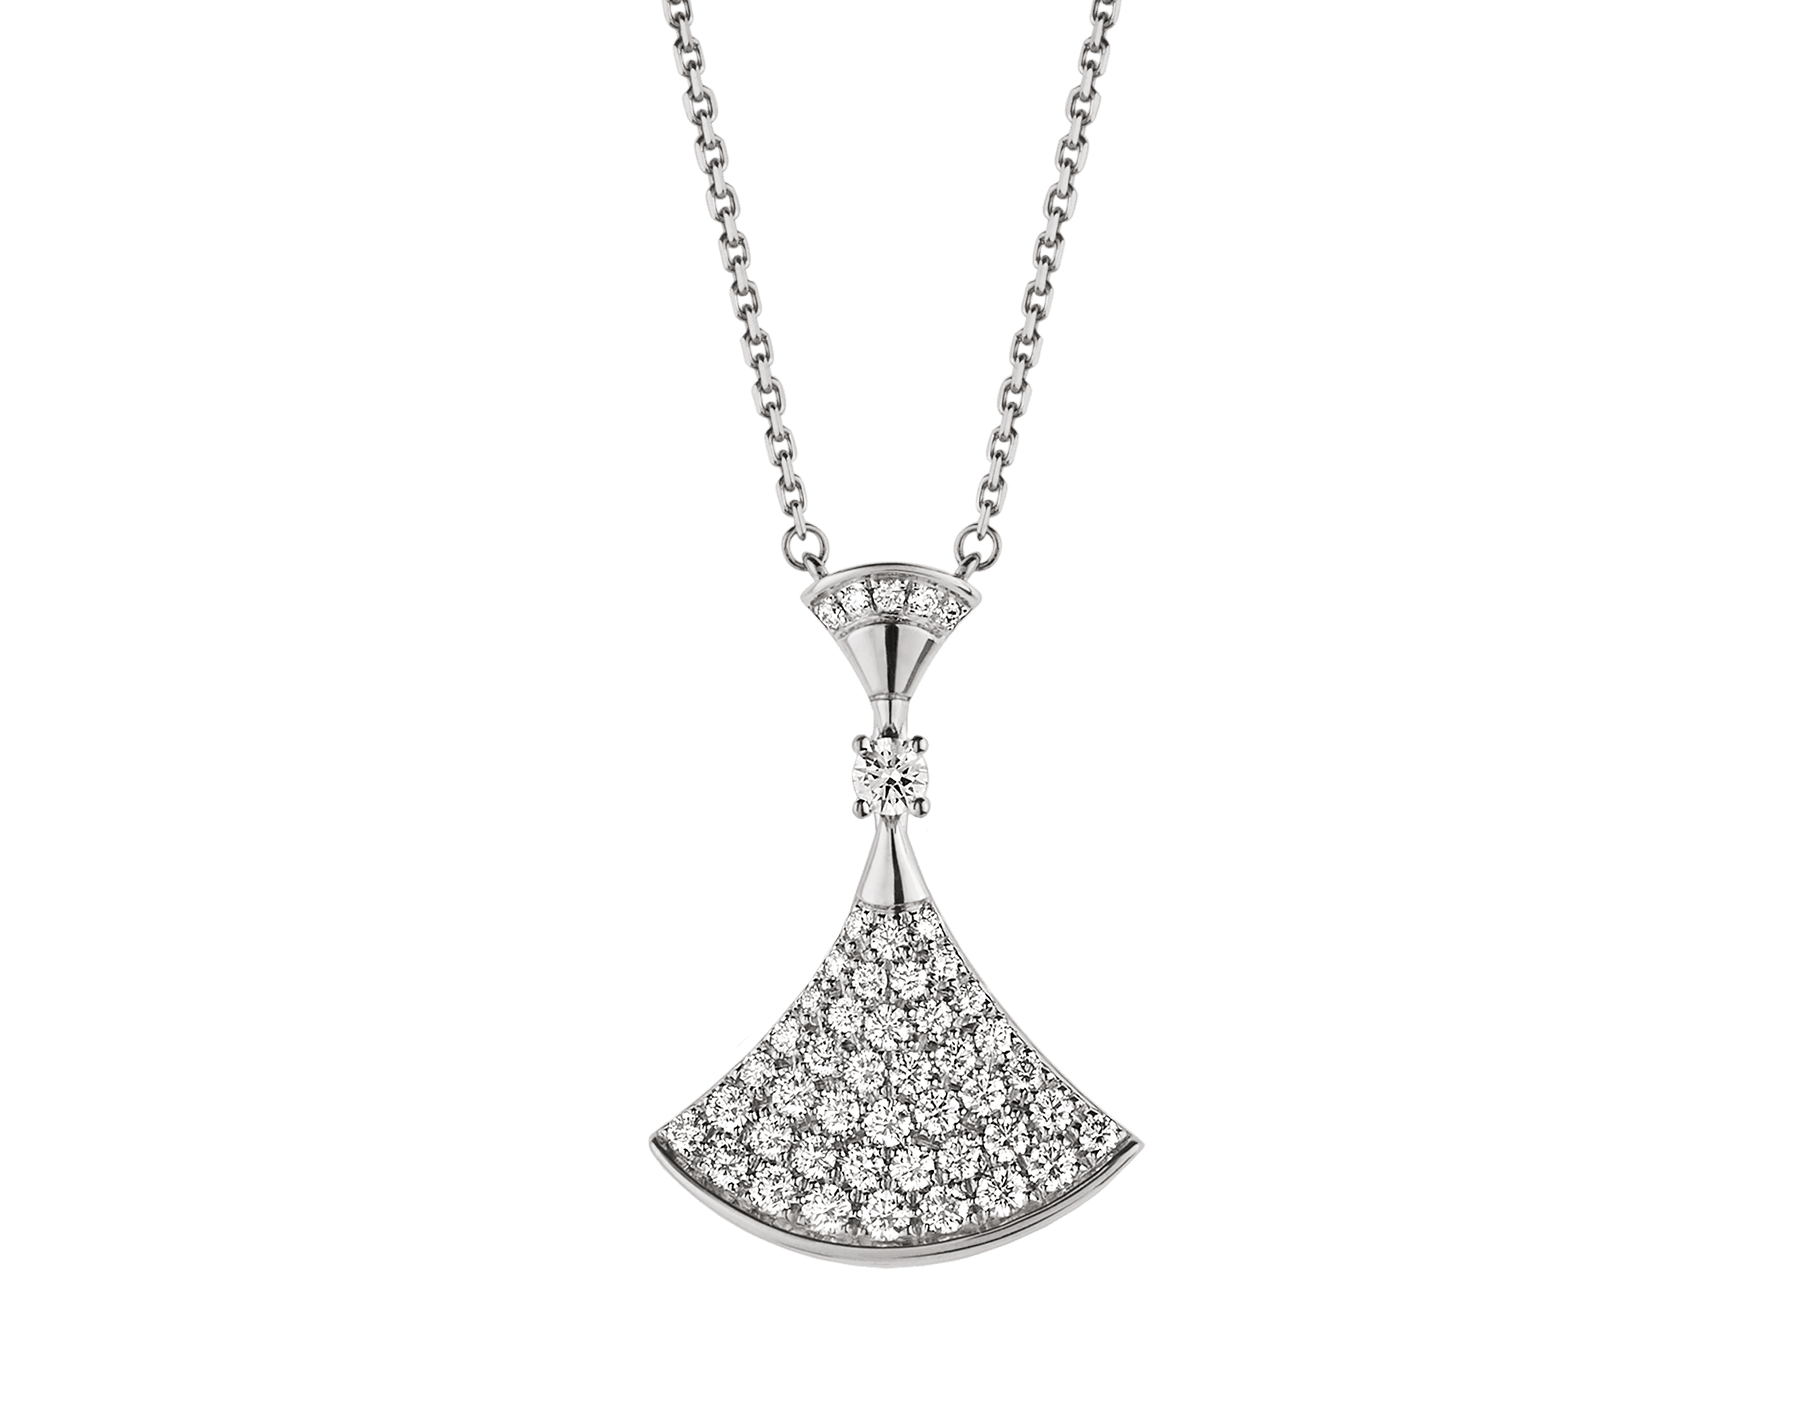 DIVAS' DREAM necklace in 18 kt white gold with pendant set with one diamond and pavé diamonds. 350066 image 1